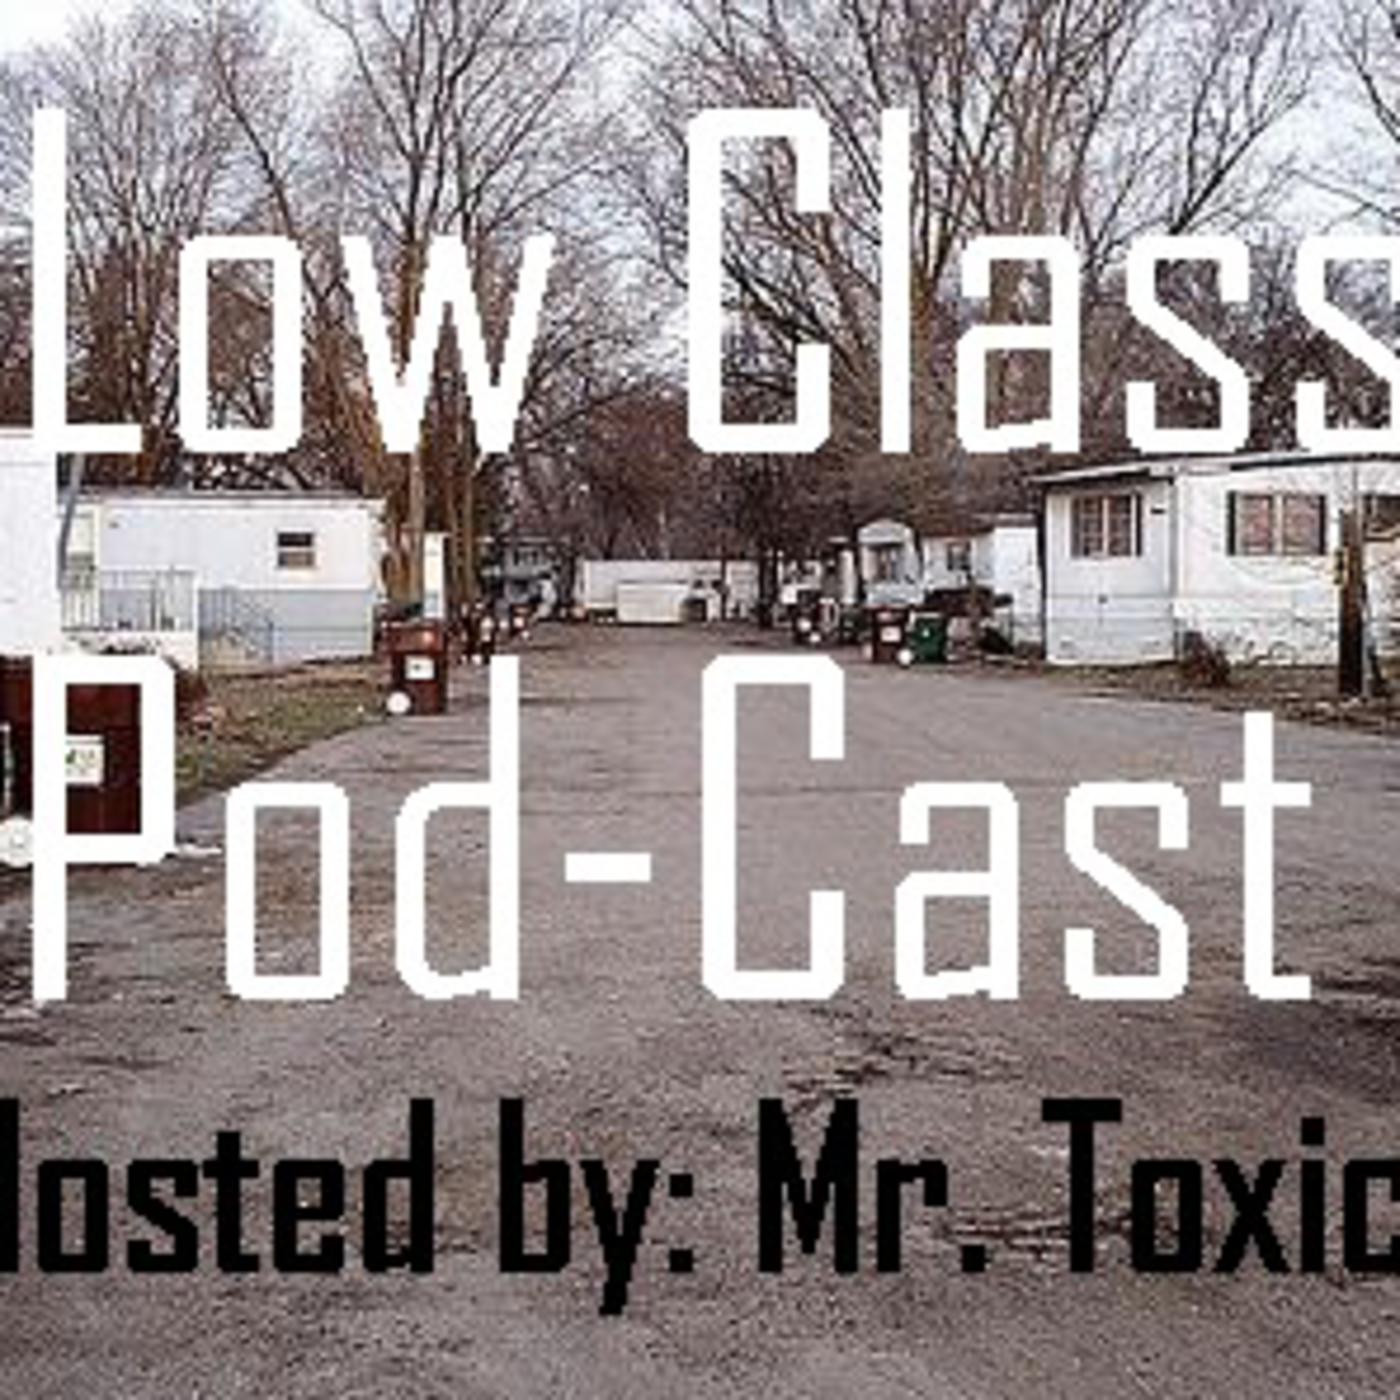 Low Class Podcast - Episode 1: Exposing The Music Industry